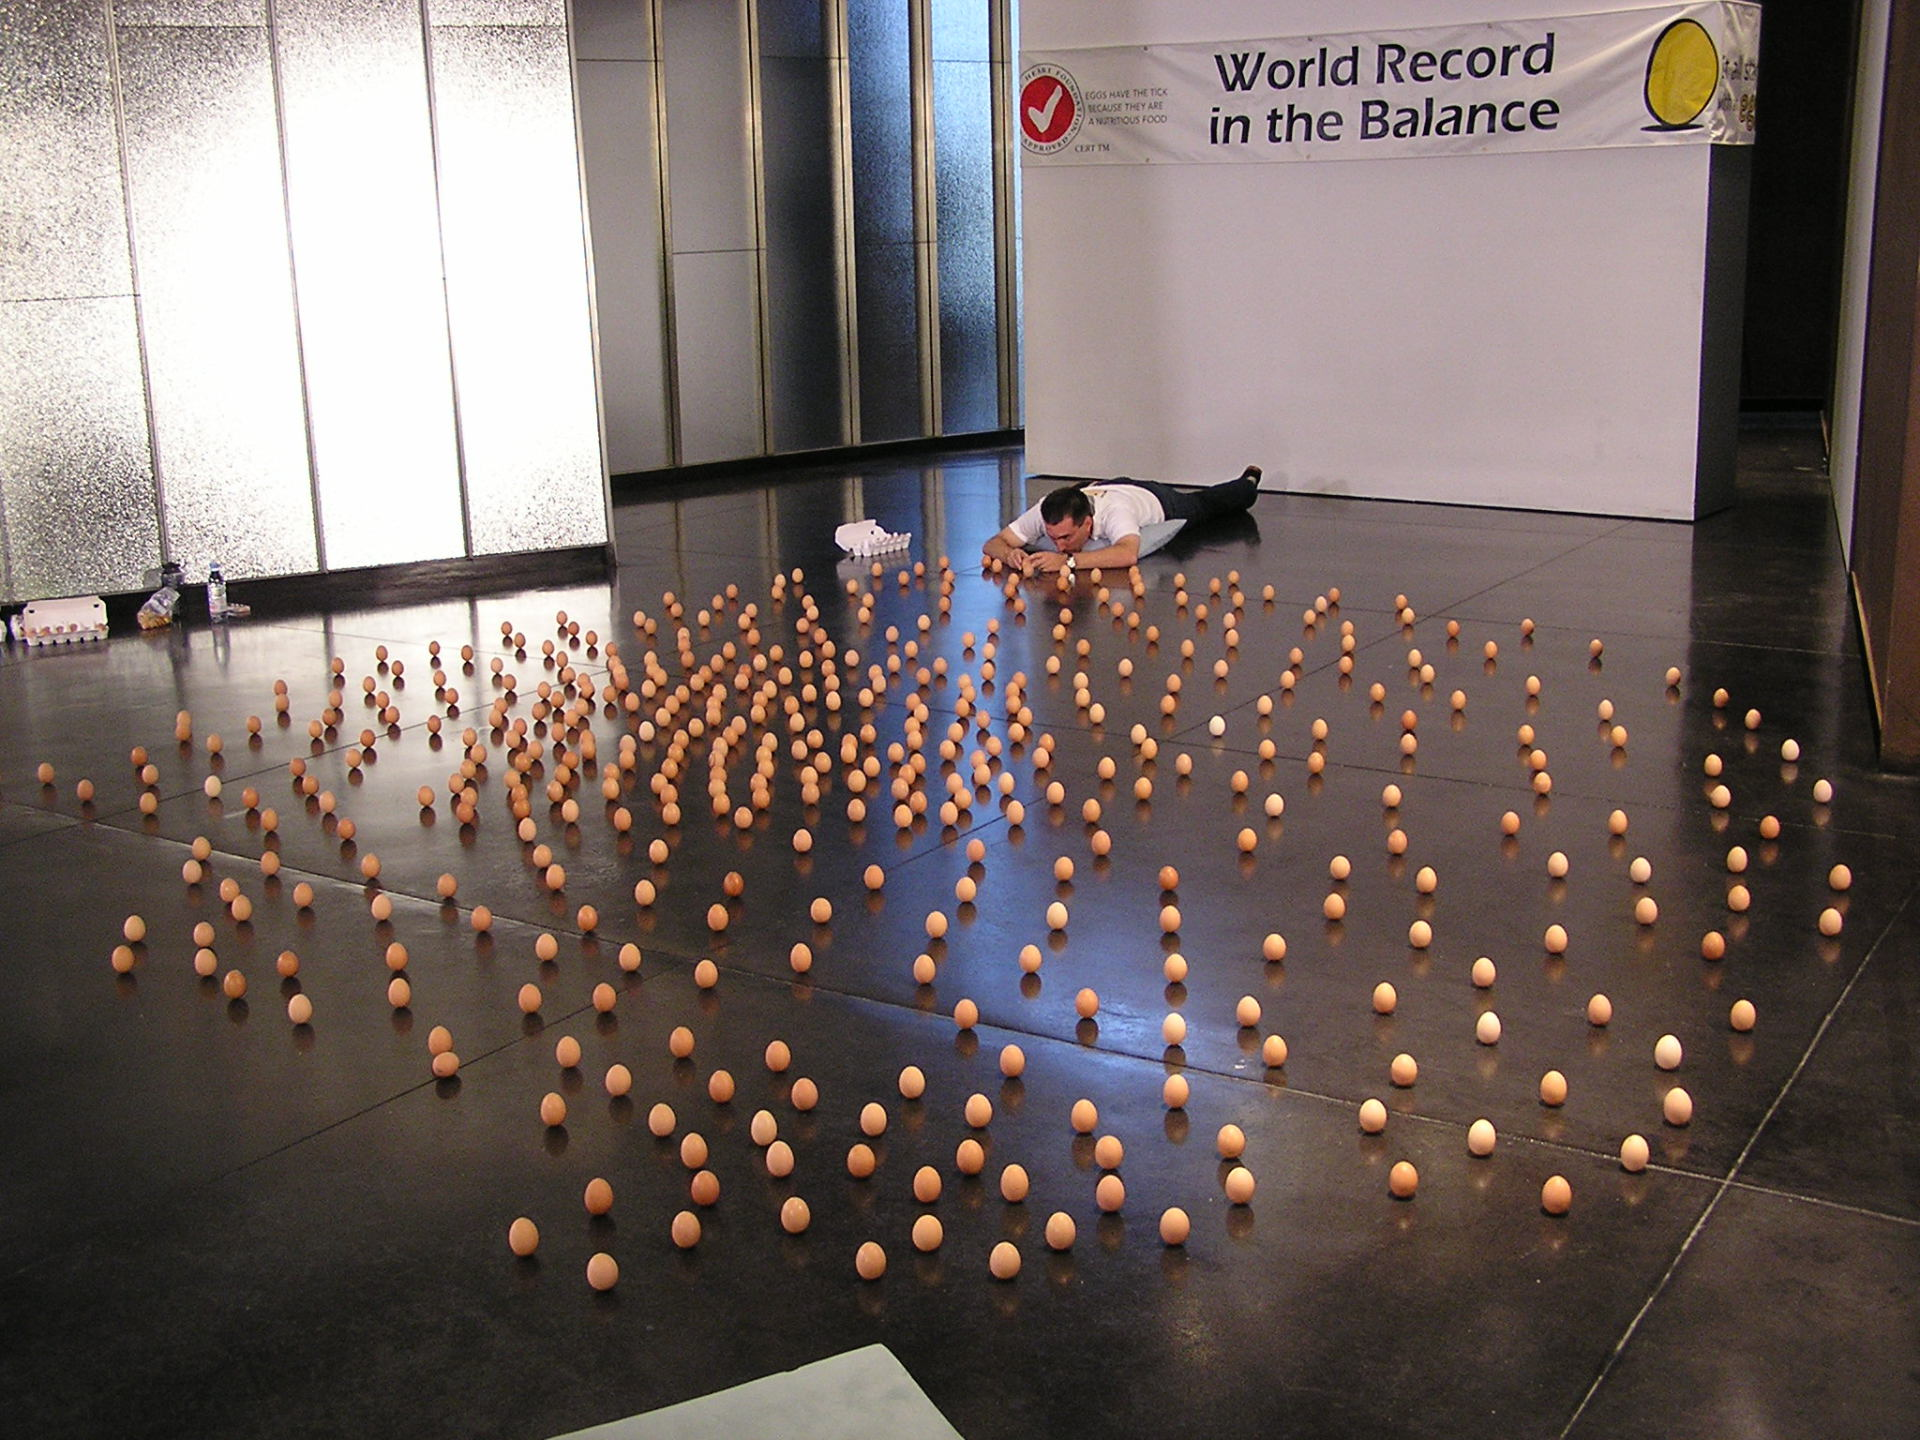 Balancing eggs on the floor of the Australian Centre for Contemporary Arts